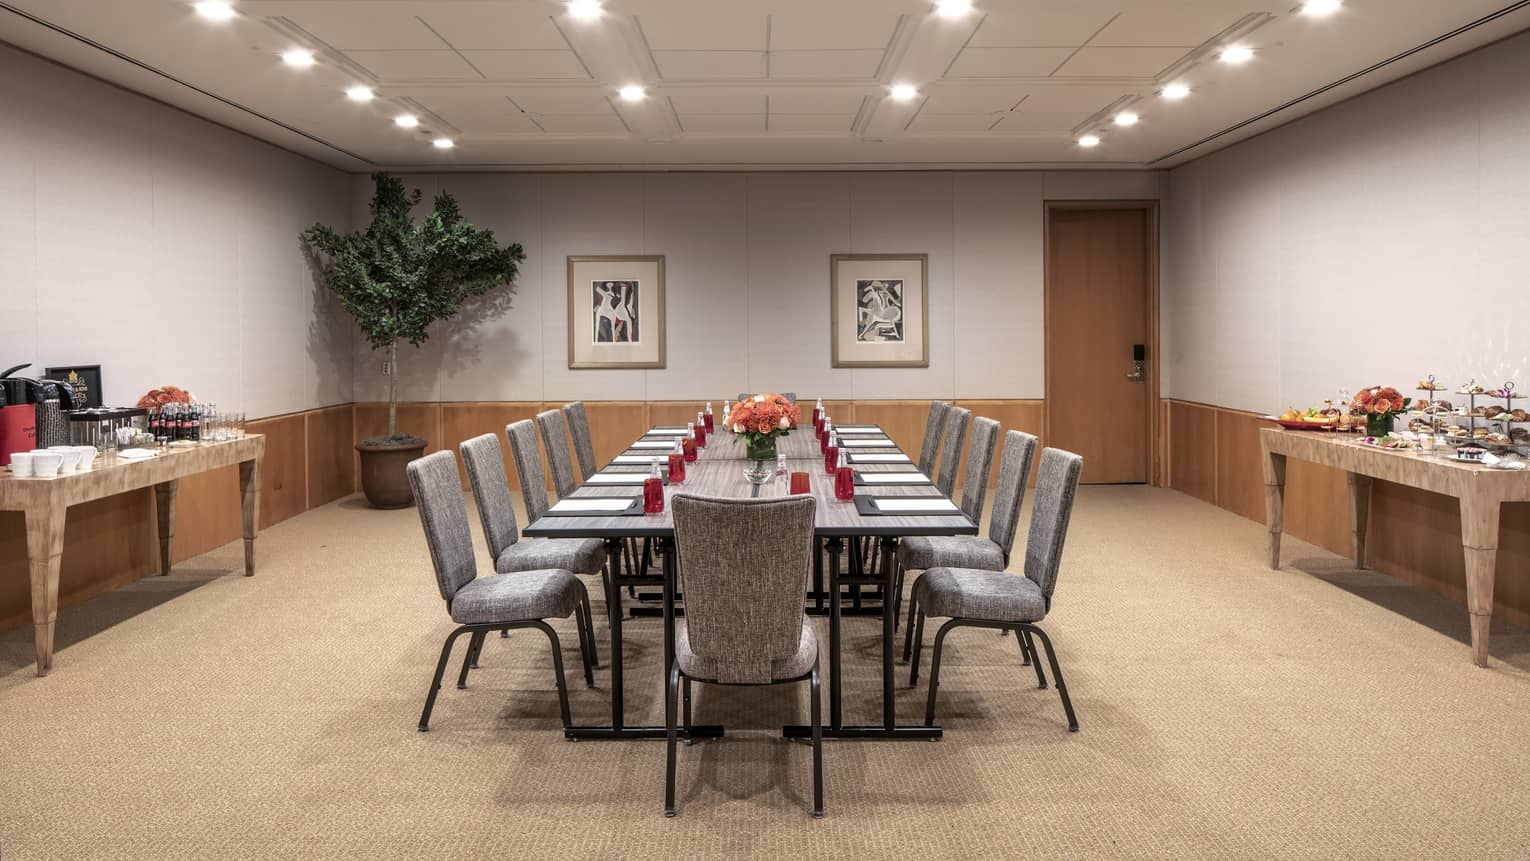 A boardroom with a long rectangular gray table that is set with red water glasses, a black folder, white paper and a orange floral centerpiece.